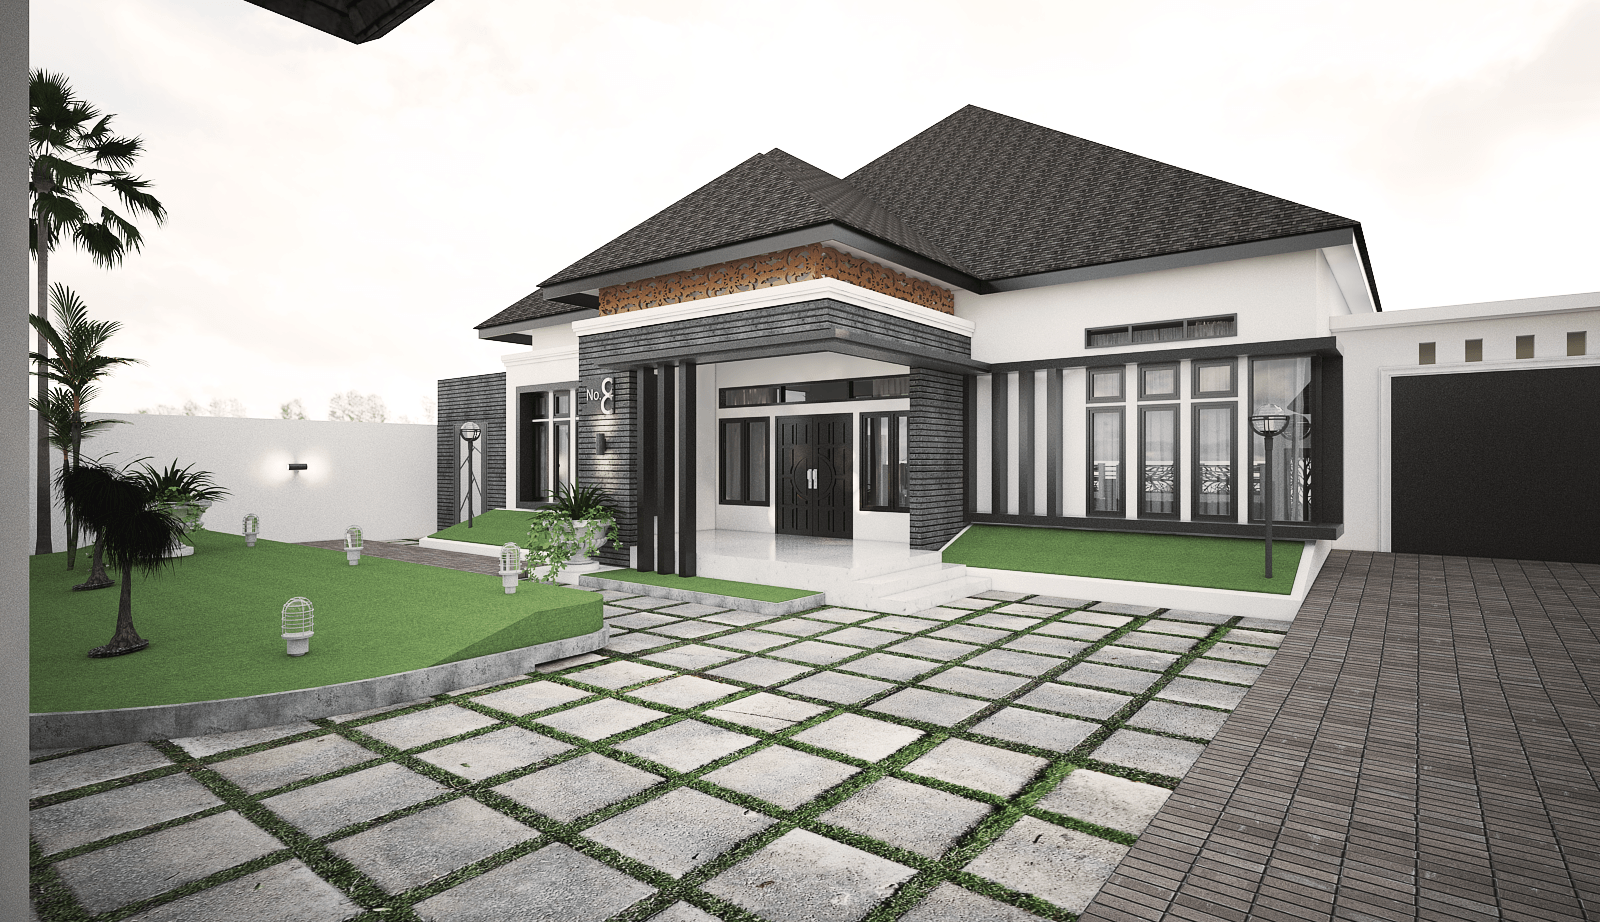 Yay Architect Concept Classic Modern House Bireun, Aceh, Indonesia Bireun, Aceh, Indonesia E   28377